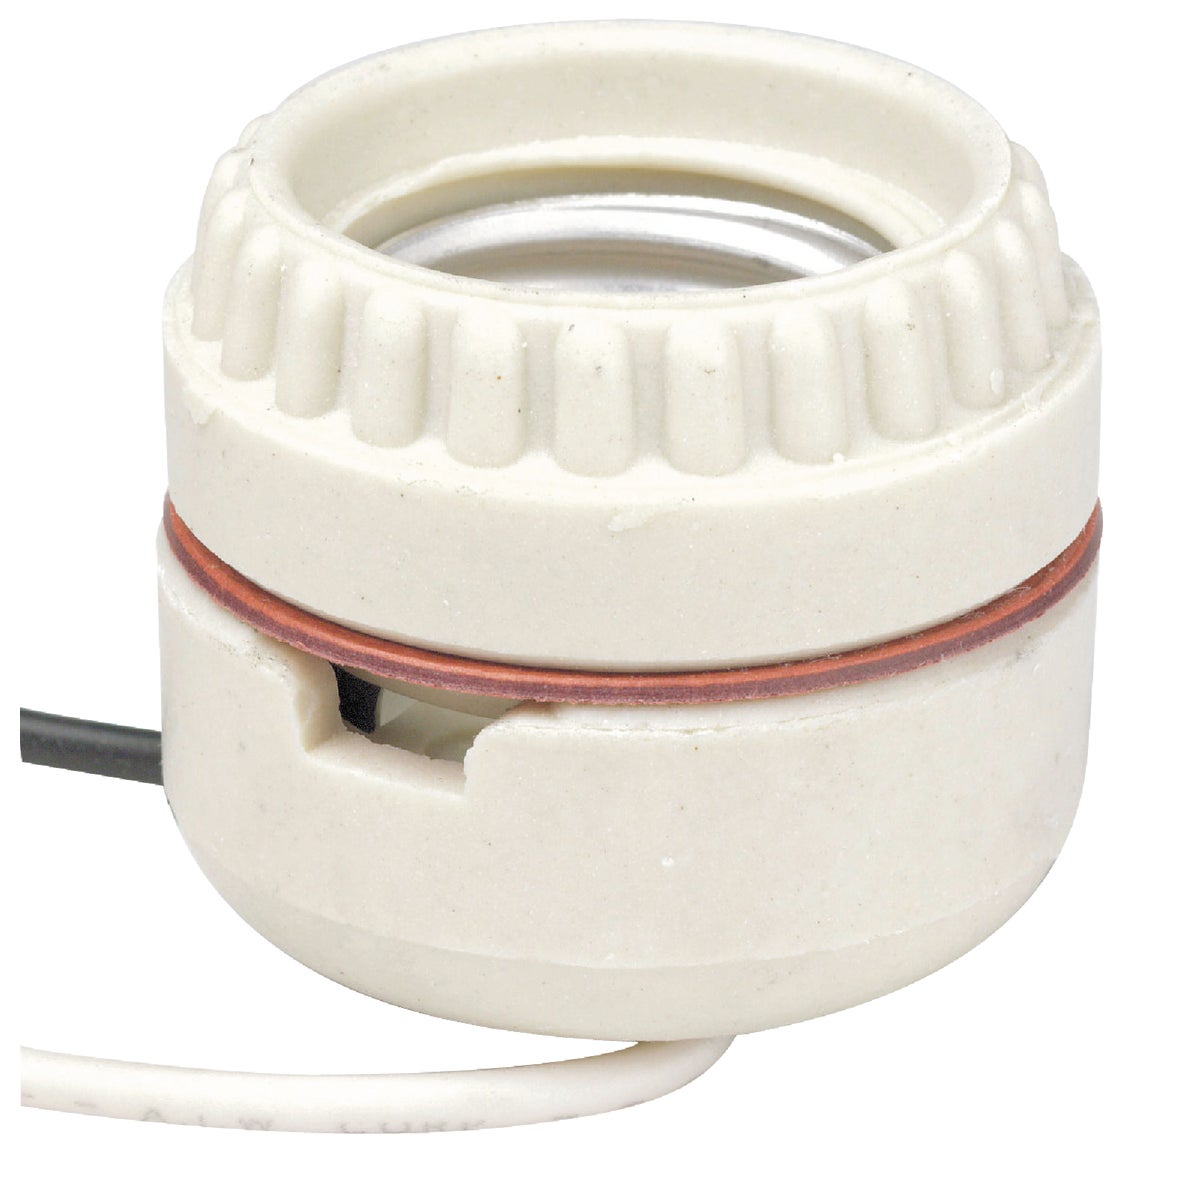 PORCELAIN SOCKET W/LEADS - 019-8101 by Leviton Mfg Co